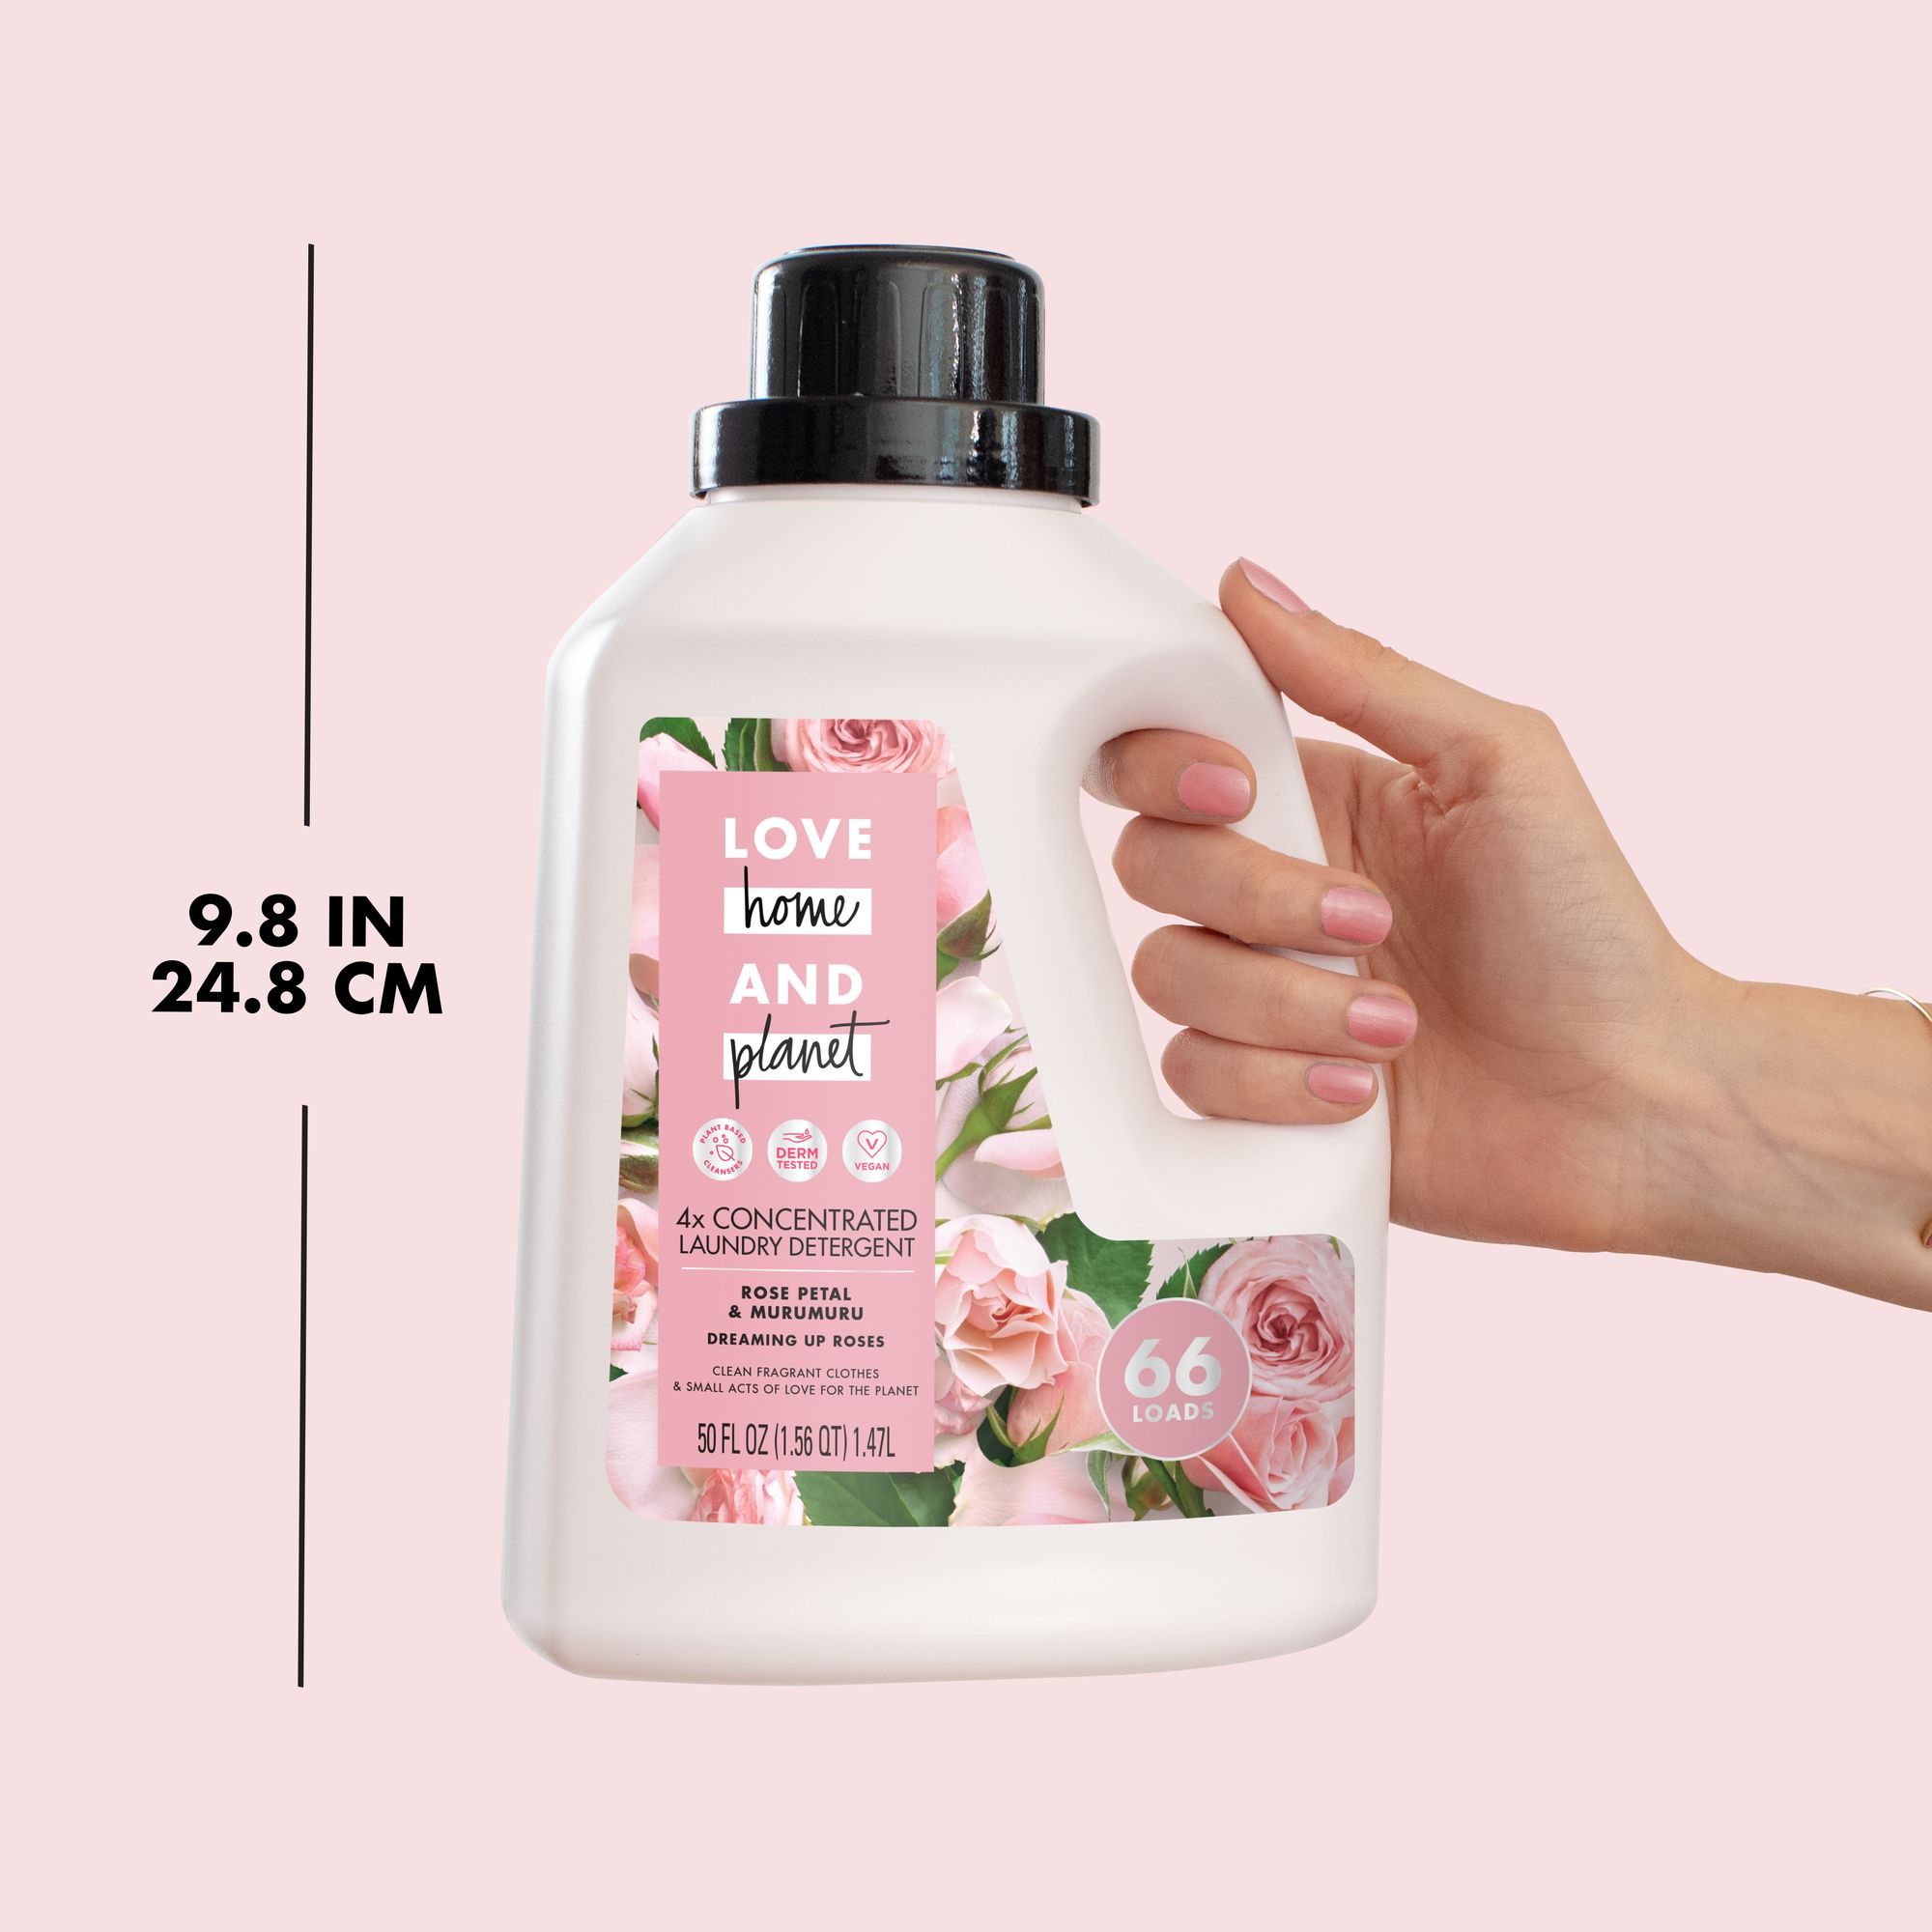 Home and Planet Concentrated Laundry Detergent Rose ... Home And Planet on home science, home of superman krypton, home tree, home school, home color, home ice, home truck, home of superman metropolis illinois, home flower, home community, home tower, home food, home fire, home satellite,